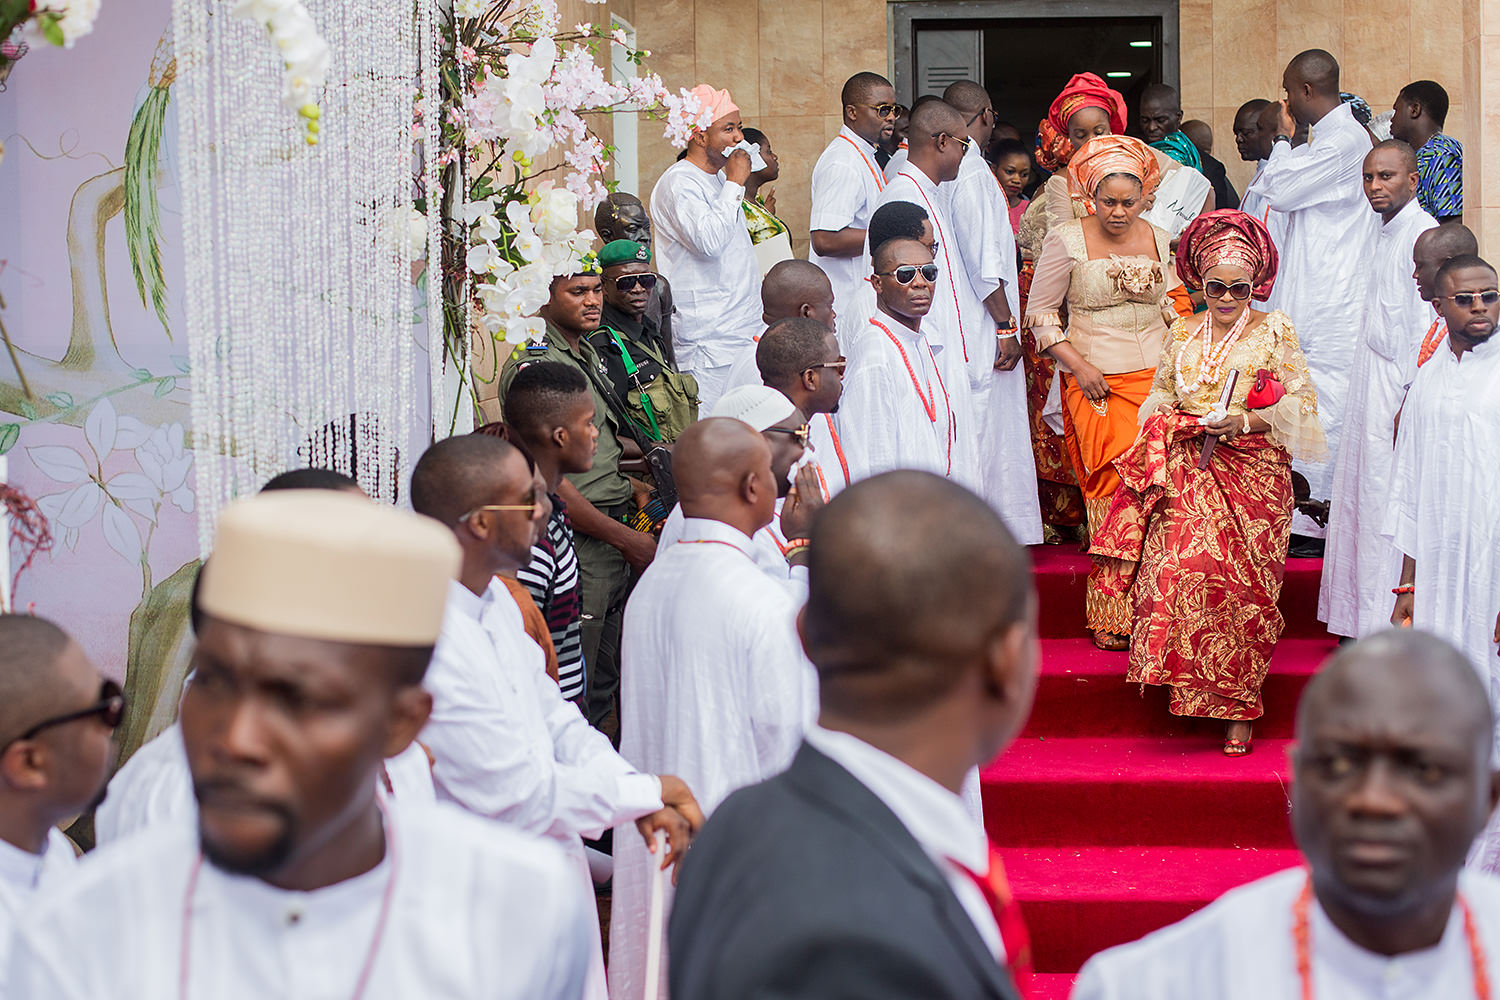 Nigerian wedding11.jpg